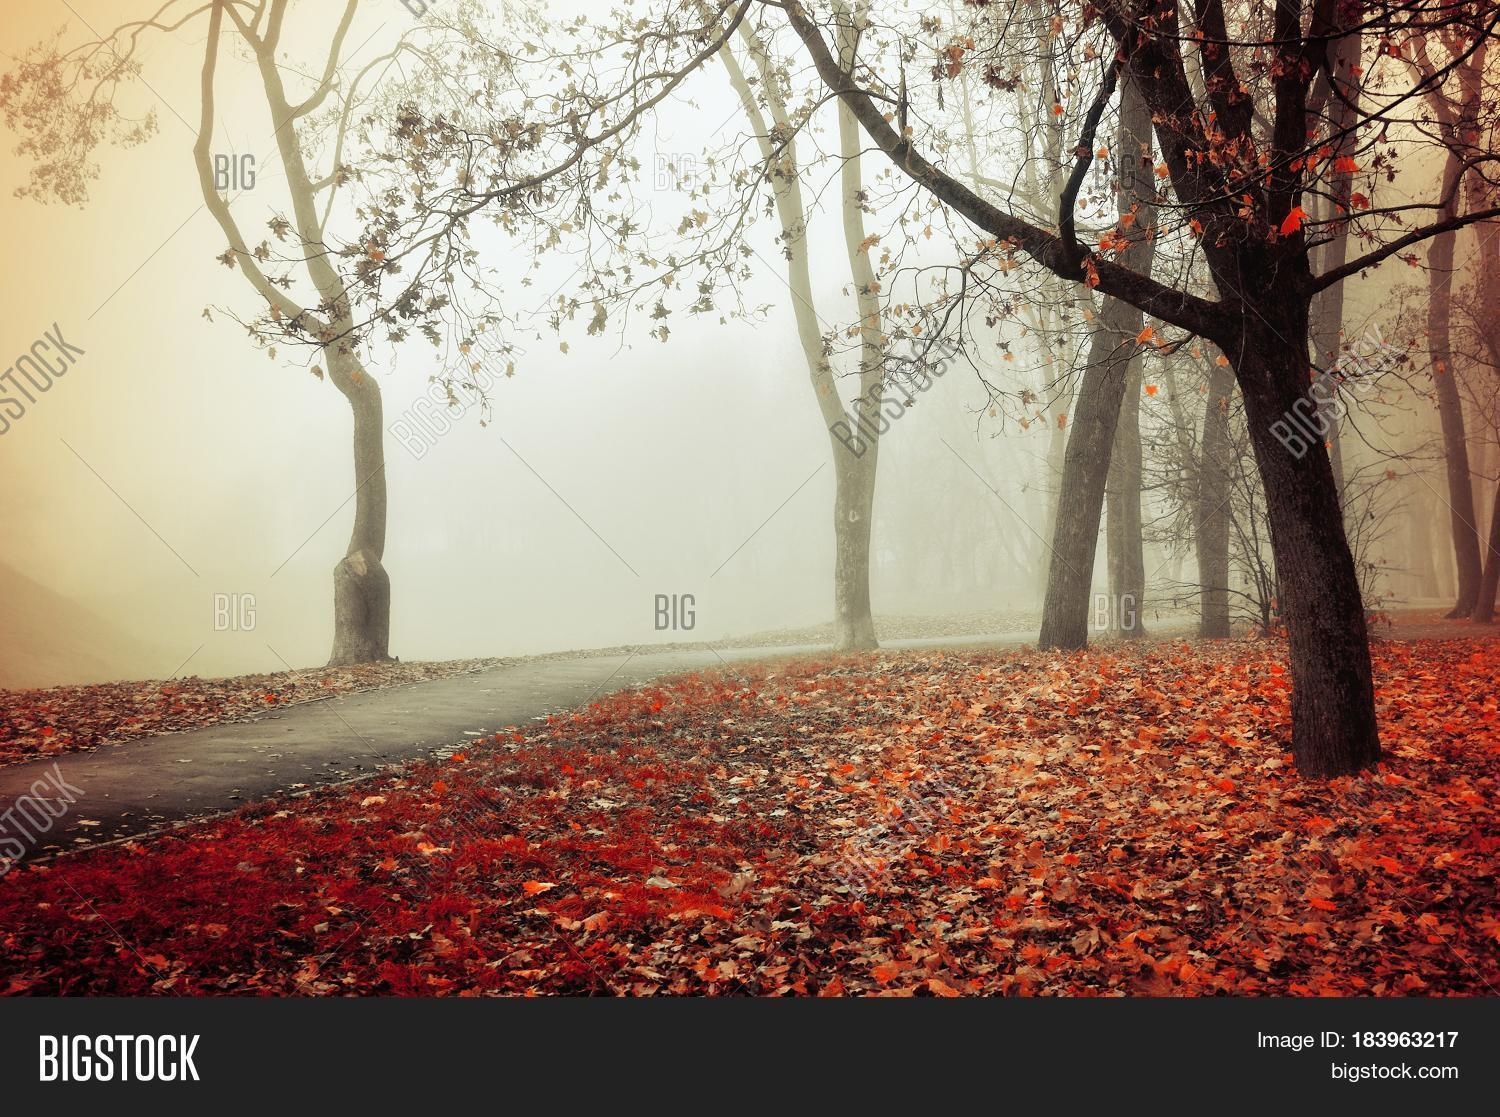 November,October,September,alley,autumn,background,bare,cloudy,dark,day,dense,dry,fallen,focus,fog,foggy,foliage,footpath,foreground,forest,gothic,grass,green,grove,landscape,leaves,lonely,mist,mysterious,mystery,nobody,panorama,park,path,place,processing,quiet,red,road,row,season,soft,somber,stunning,thick,tree,walkway,weather